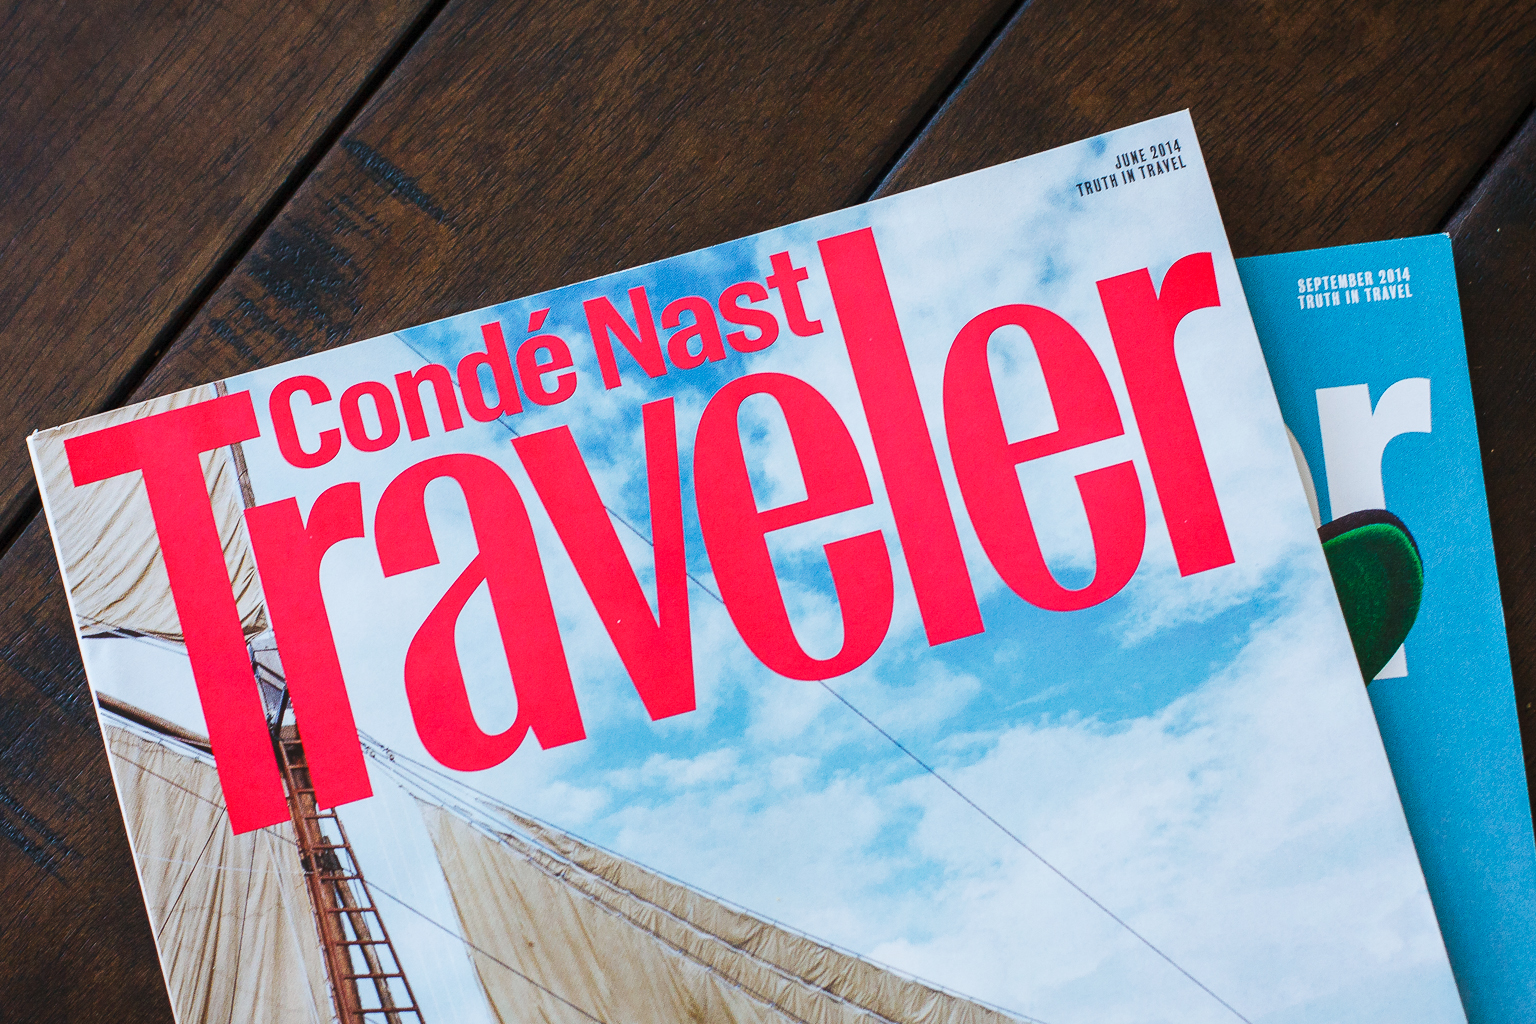 Conde Nast Traveler Magazine Is a Waste of Money